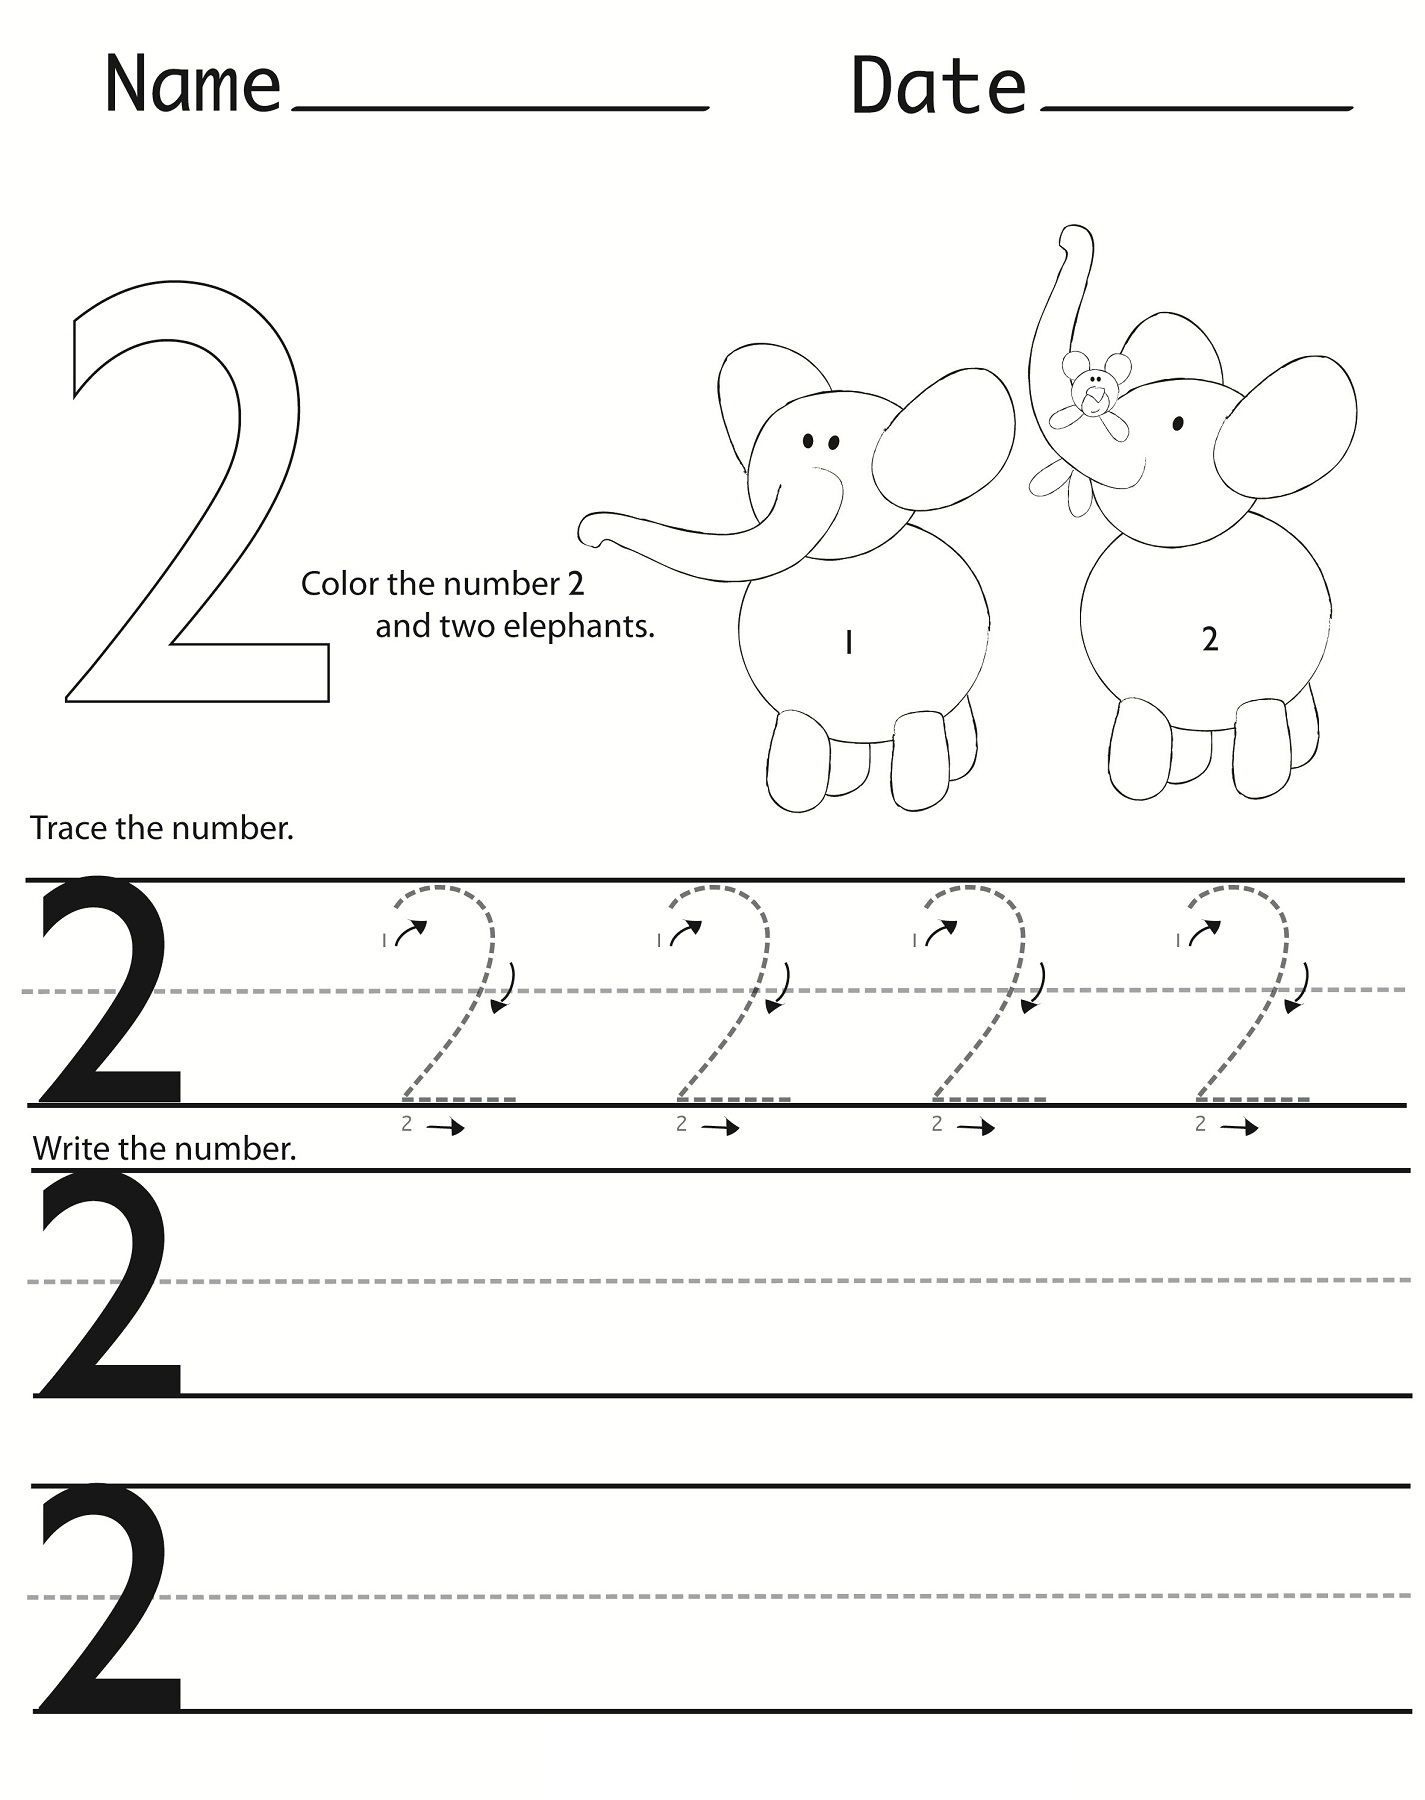 Kindergarten Number Writing Worksheet For Halloween